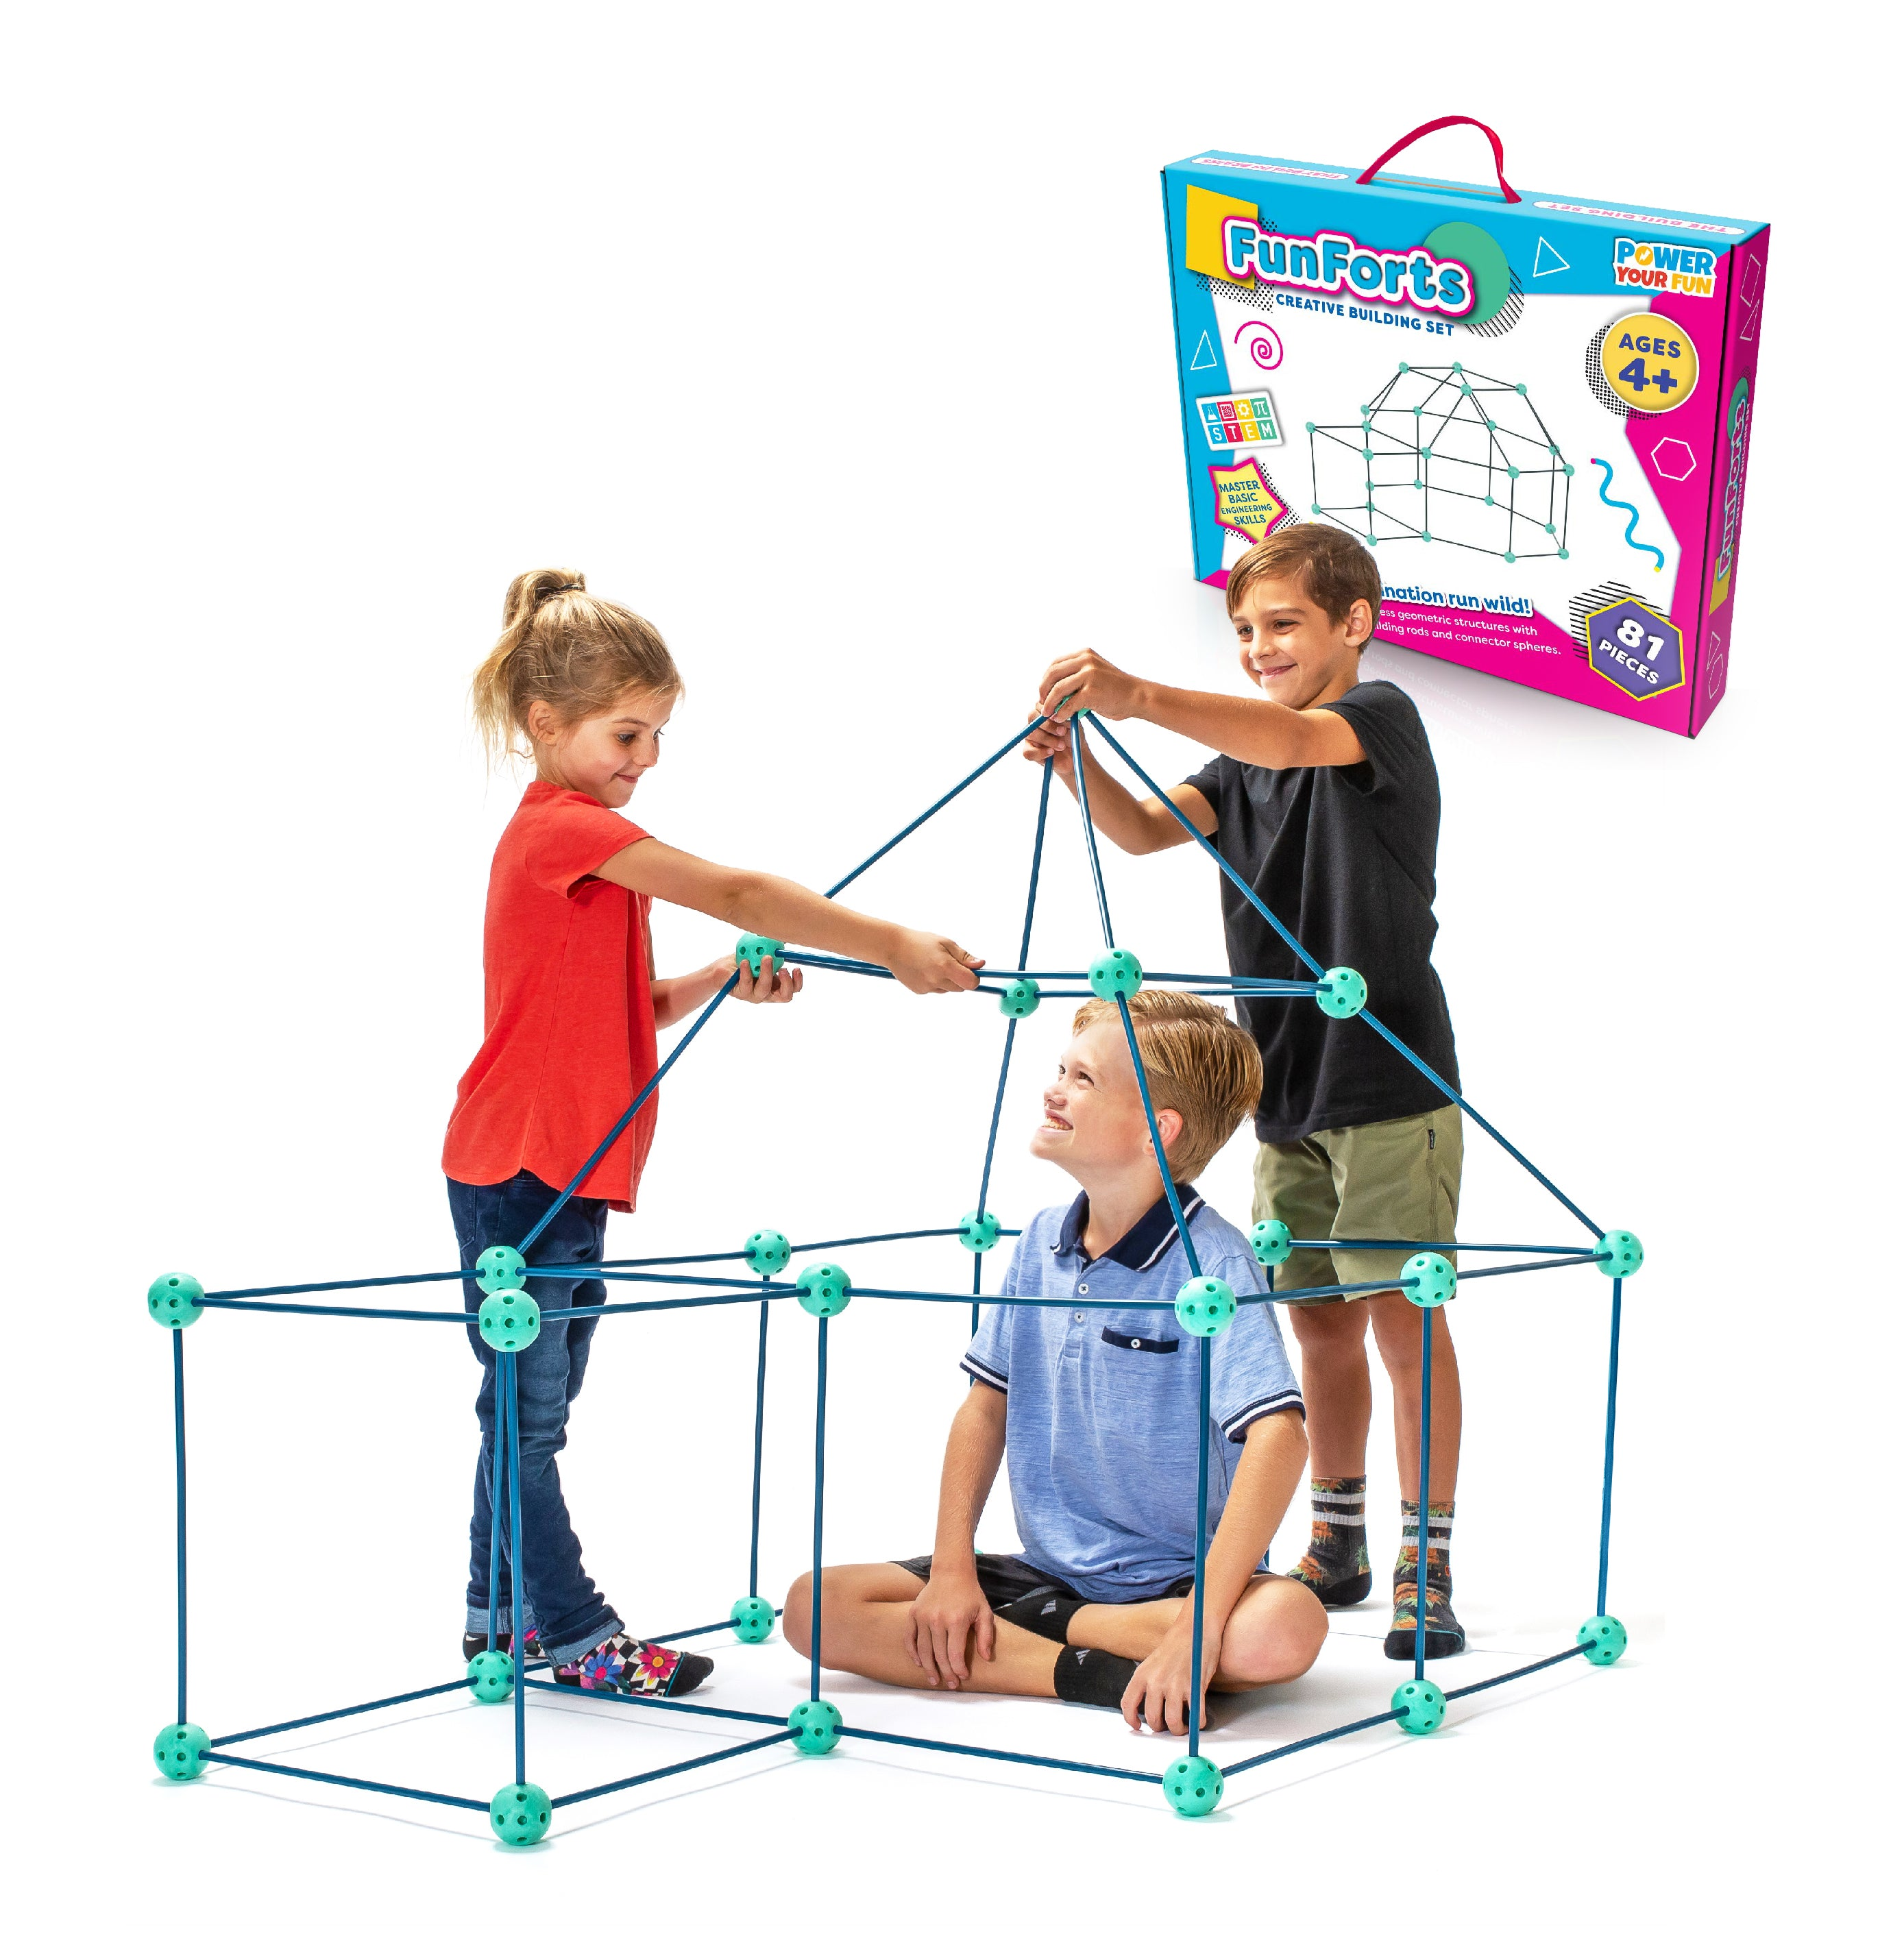 Fun Fort Building Kits for Kids (81pcs) - poweryourfun